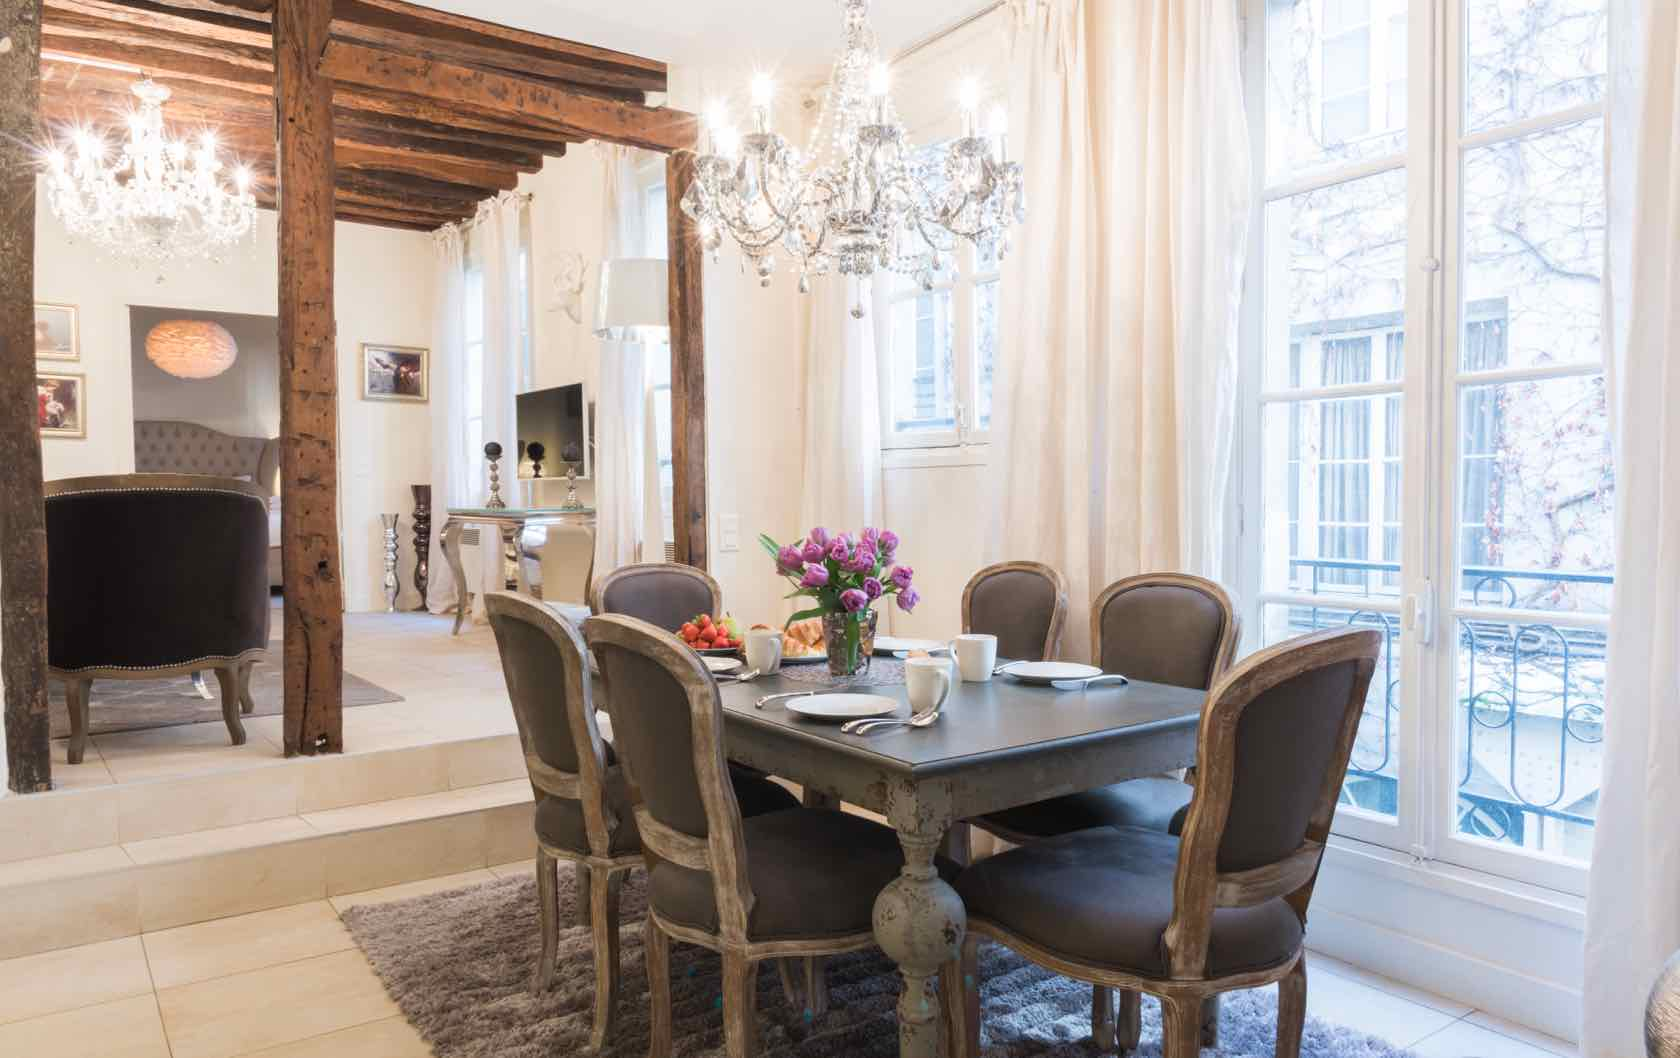 See our Long-Term Furnished Rentals in Paris by Paris Perfect Saint-Péray